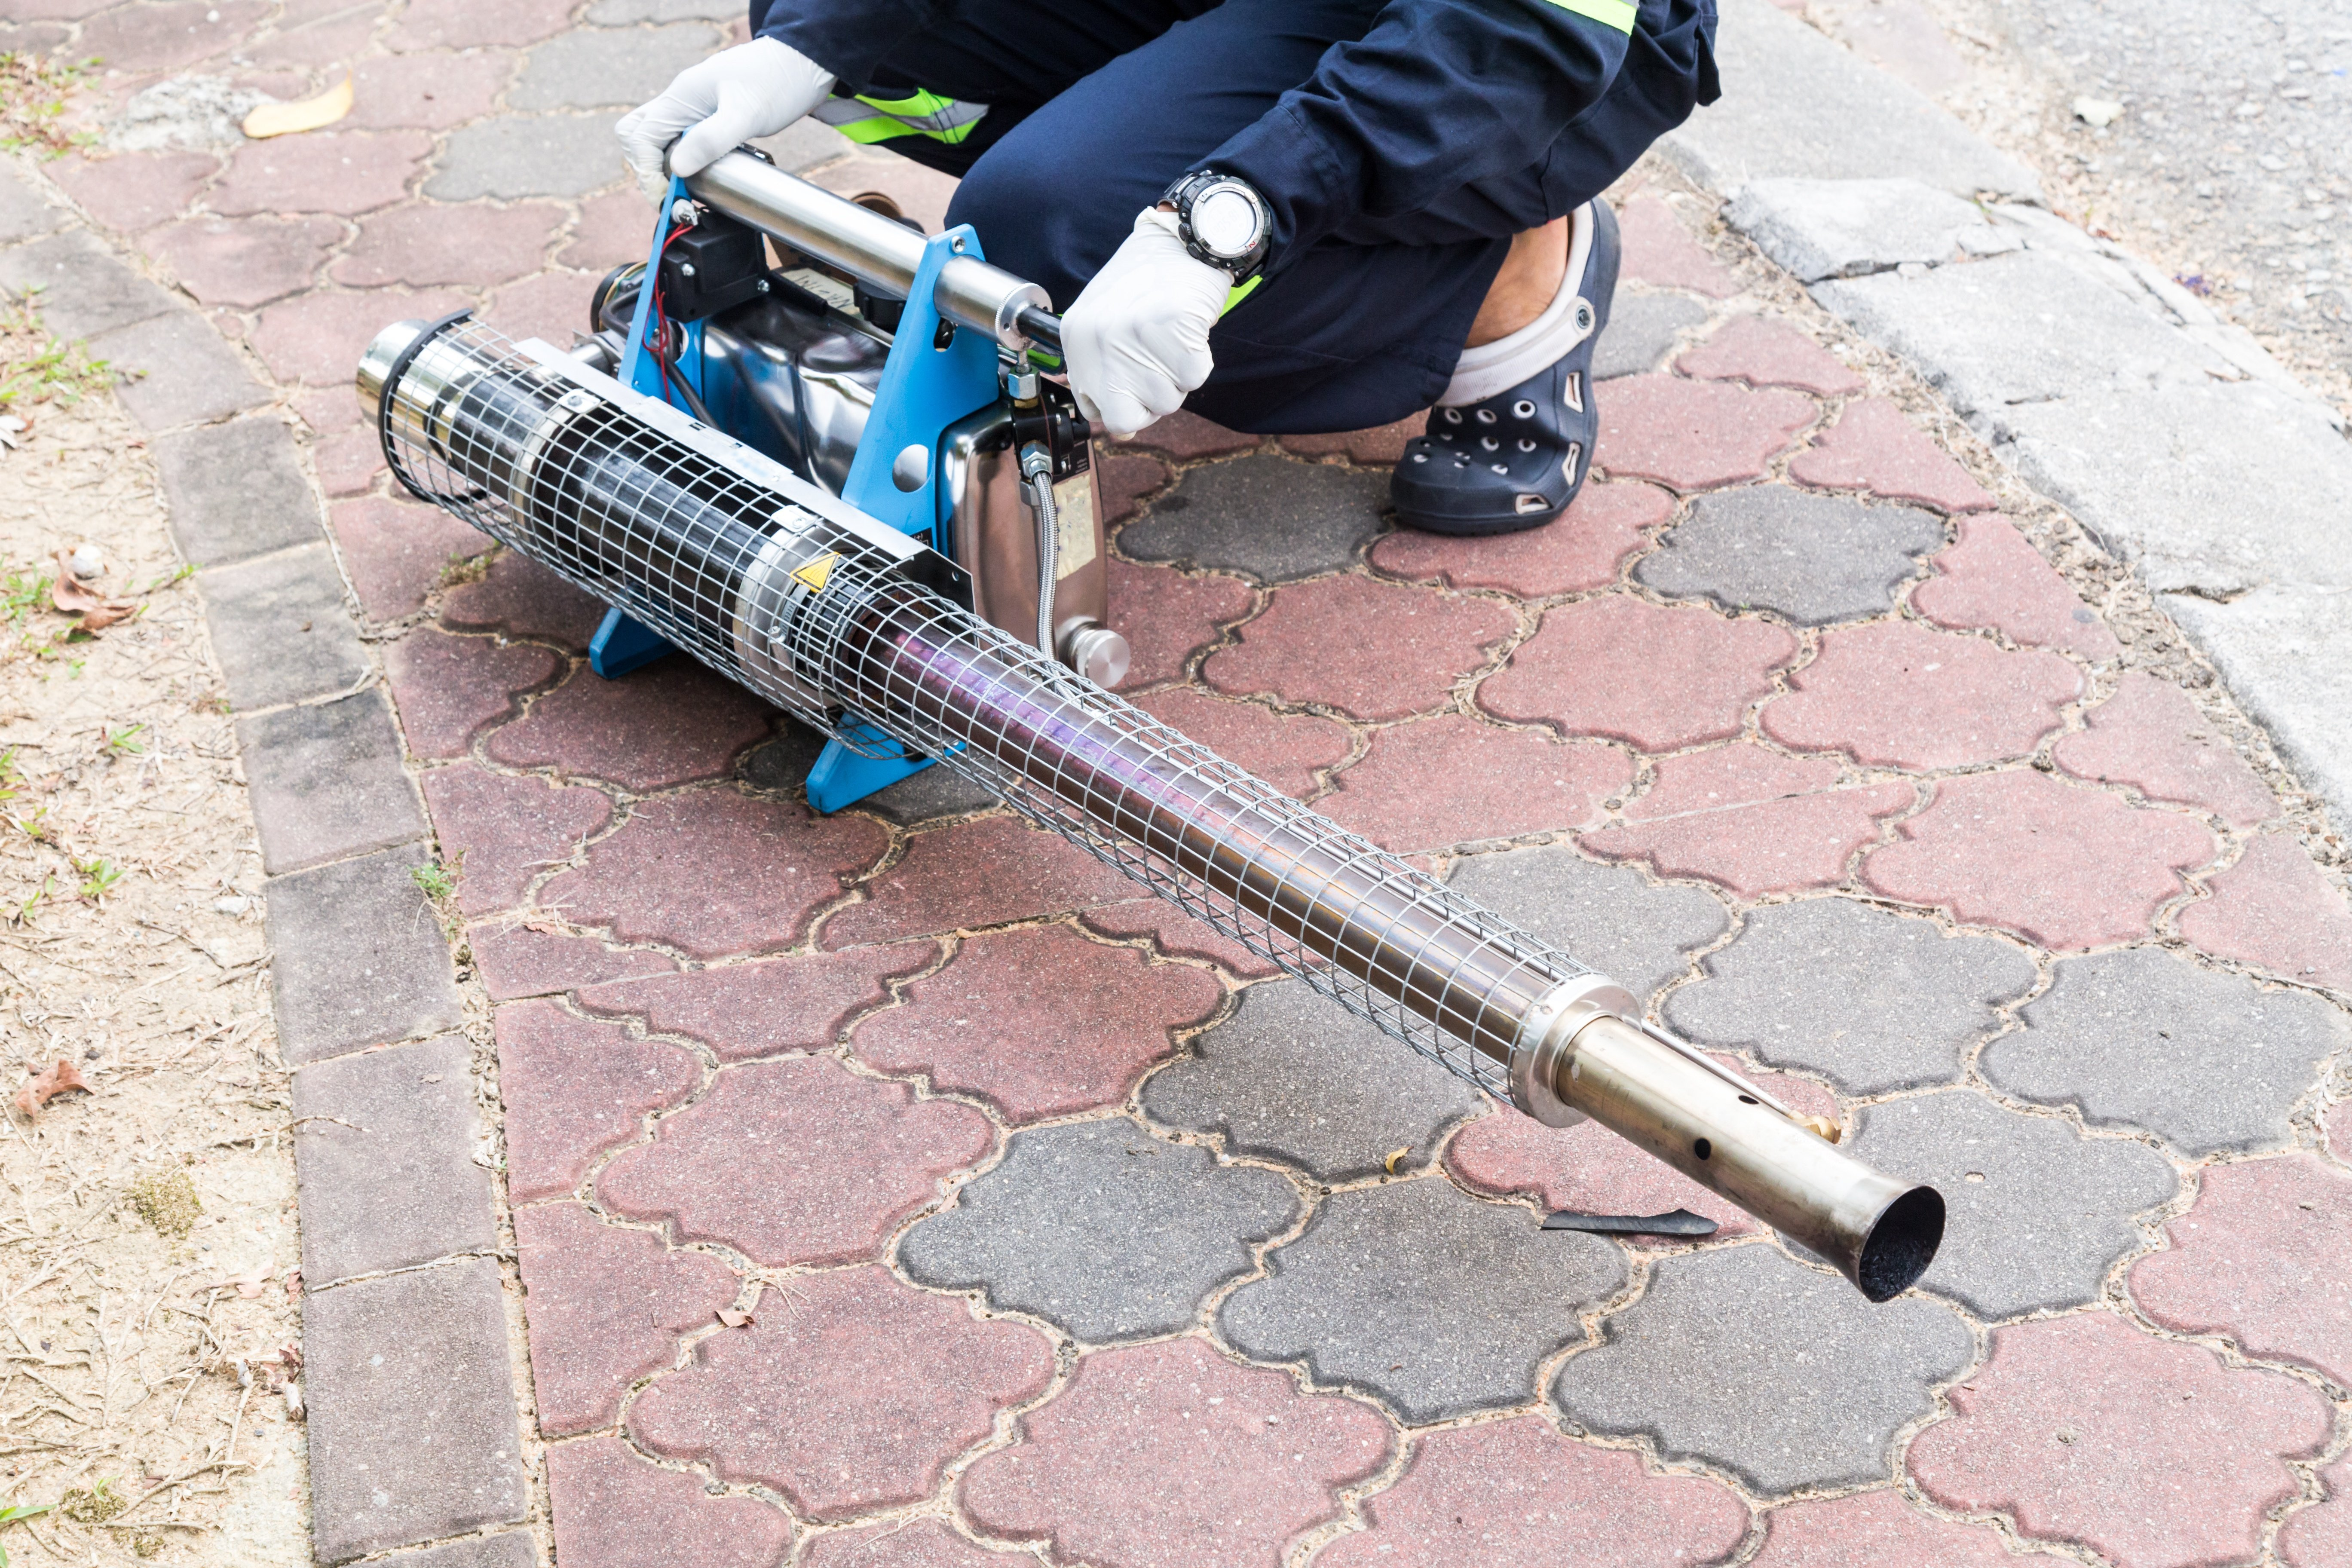 photodune-18742626-worker-preparing-machine-to-fog-with-insecticides-to-kill-aedes-xl